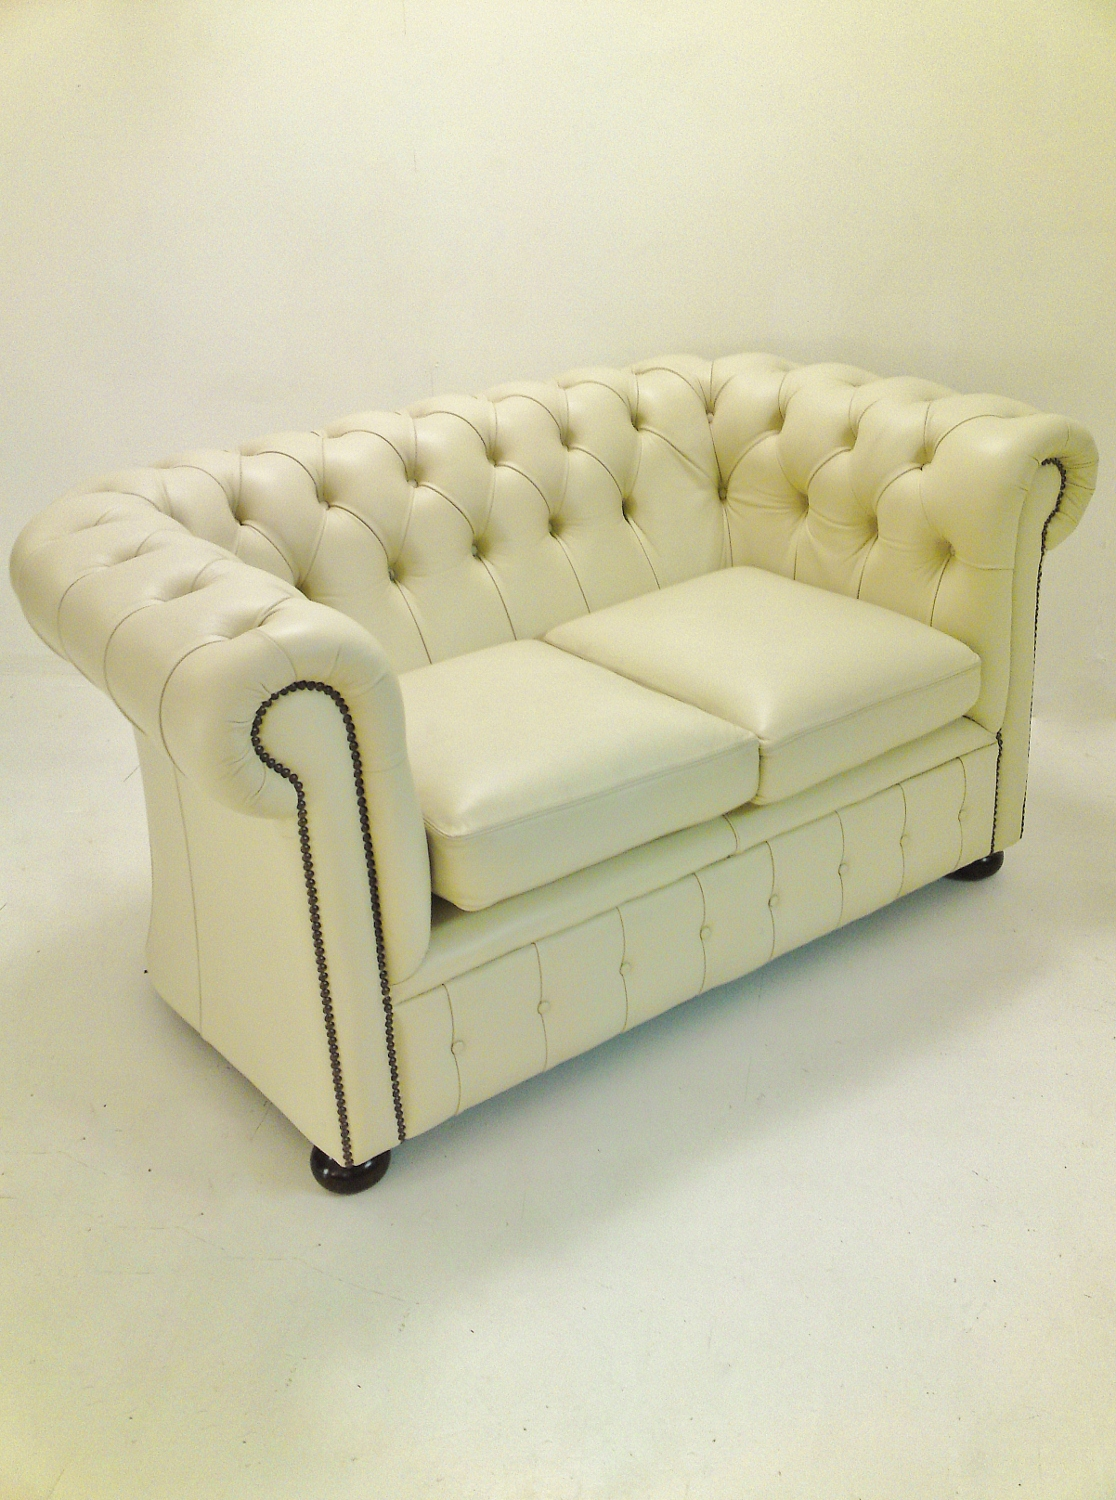 Fine Settee Sofa Couch The Difference Between Chesterfield Couch Pabps2019 Chair Design Images Pabps2019Com